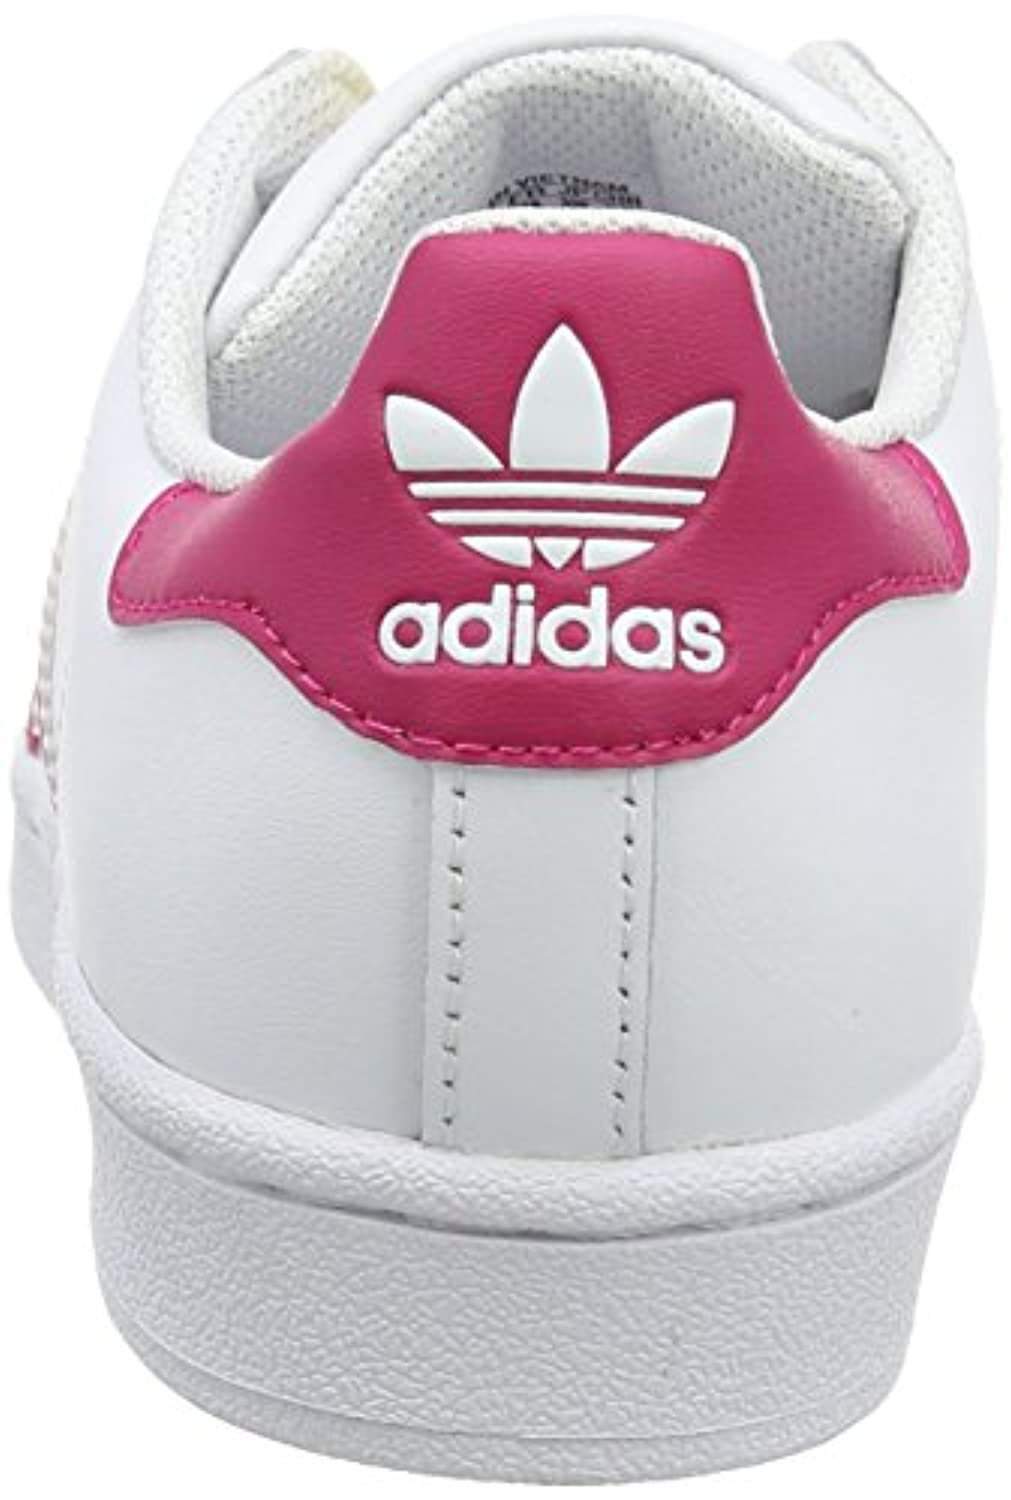 adidas Originals Girls' Superstar Foundation Low-Top Sneakers White Size: 3 UK